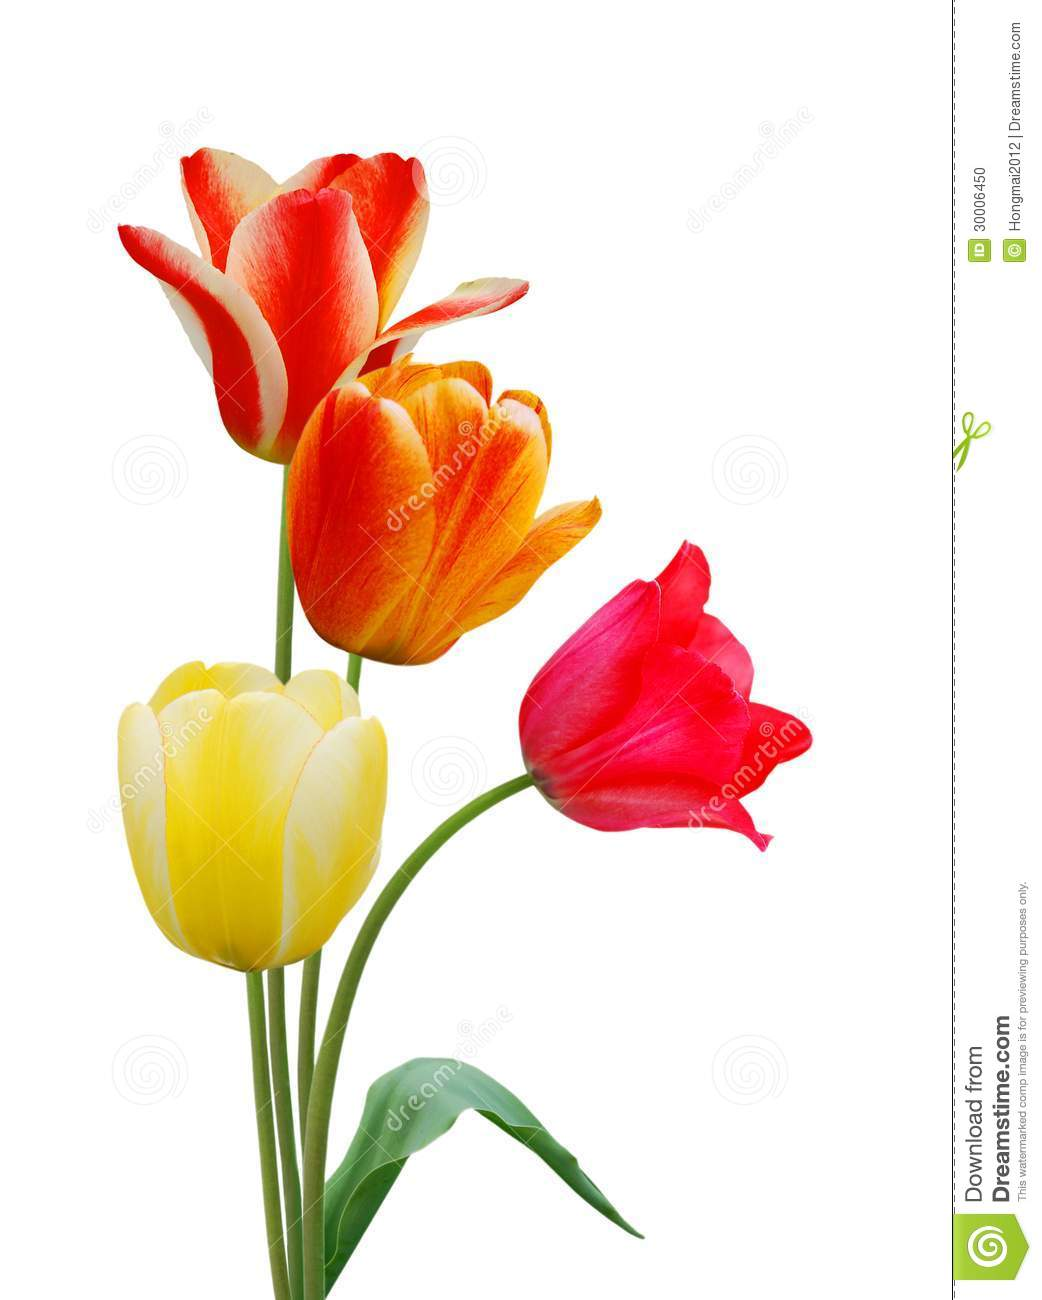 tulip flowers  flower, Beautiful flower